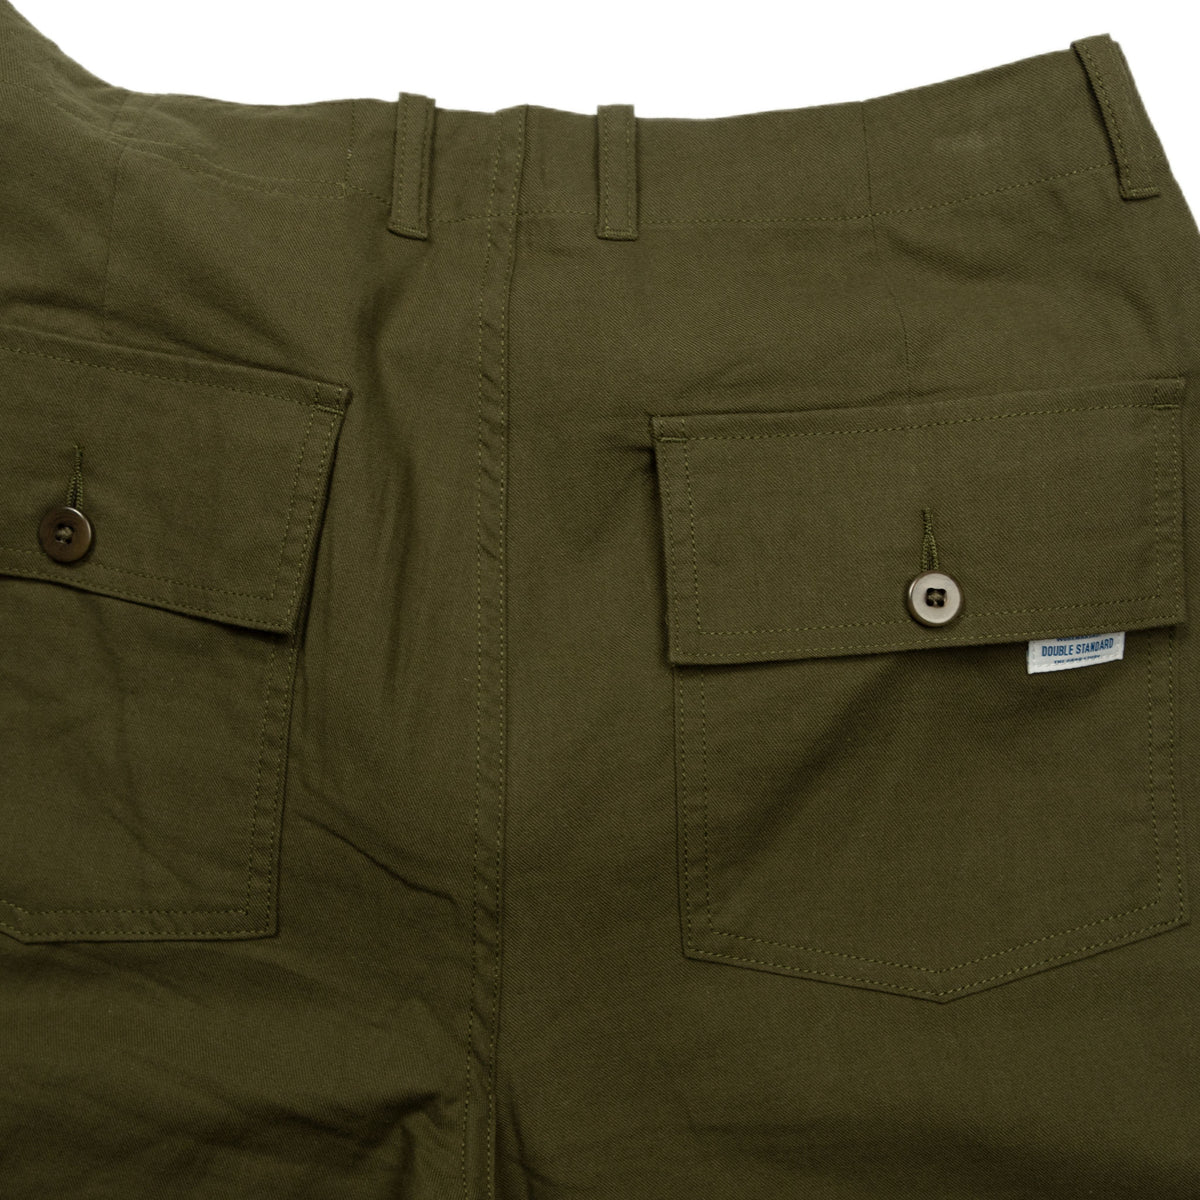 Ruffel Trousers - Green